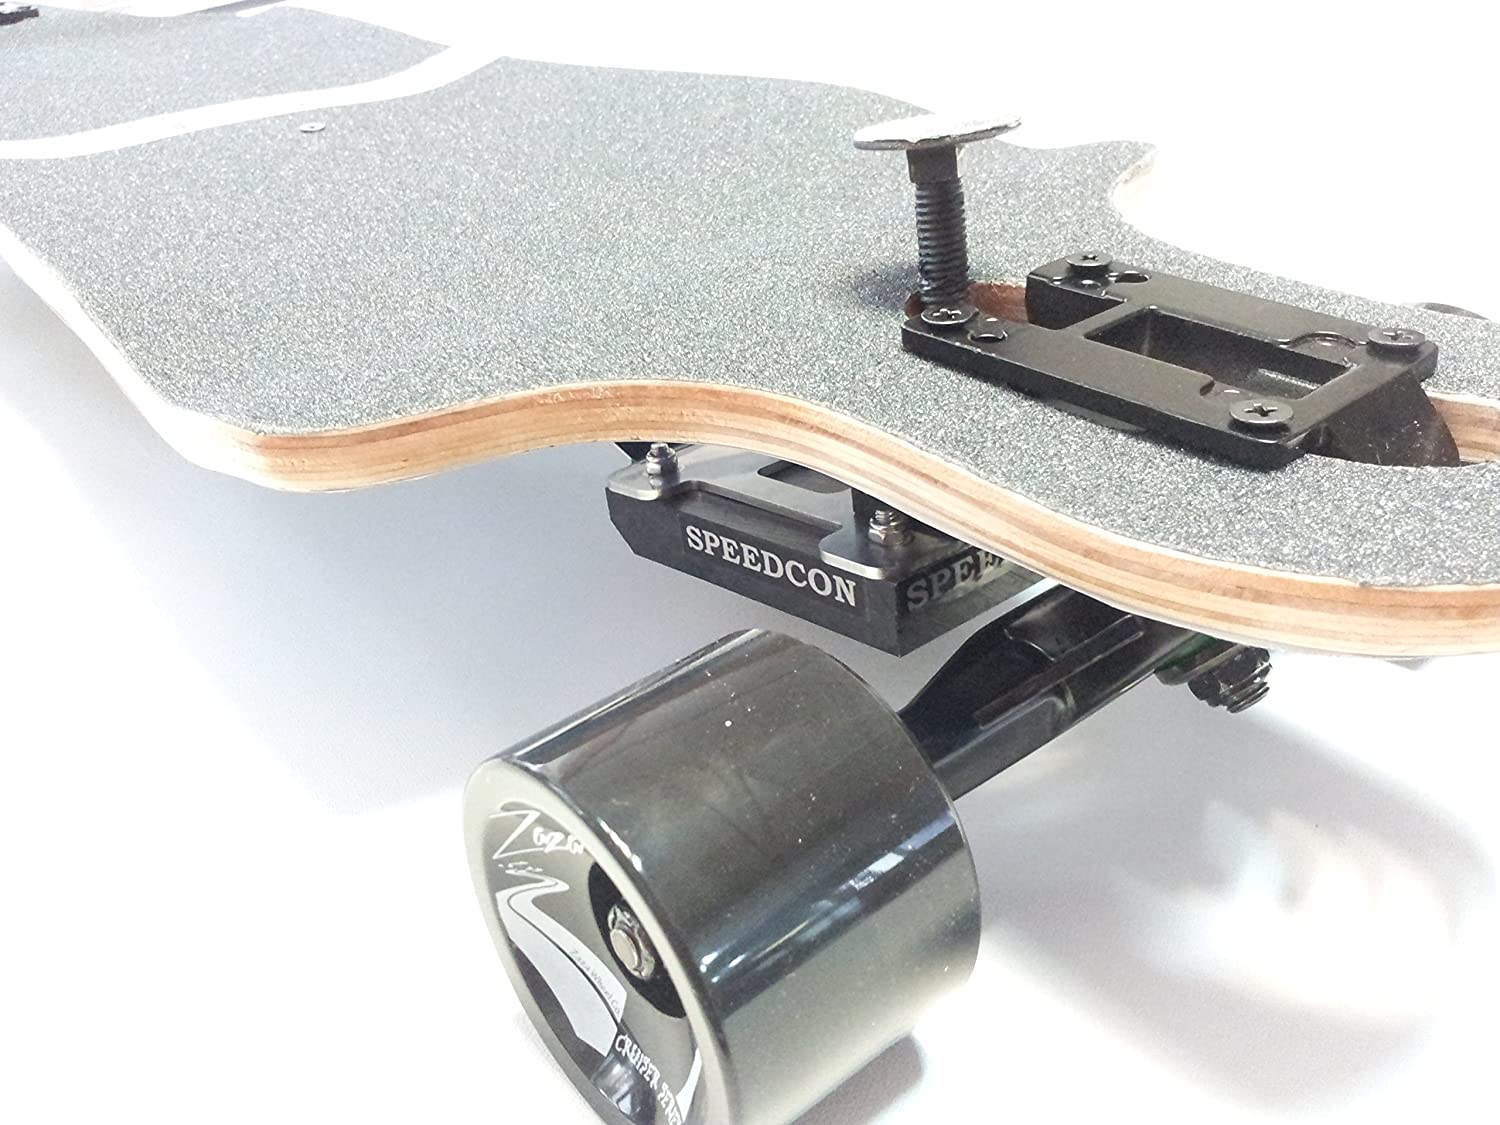 Longboard Brake 2.0 Kit for Drop through(A Single Slide Brake Kit)